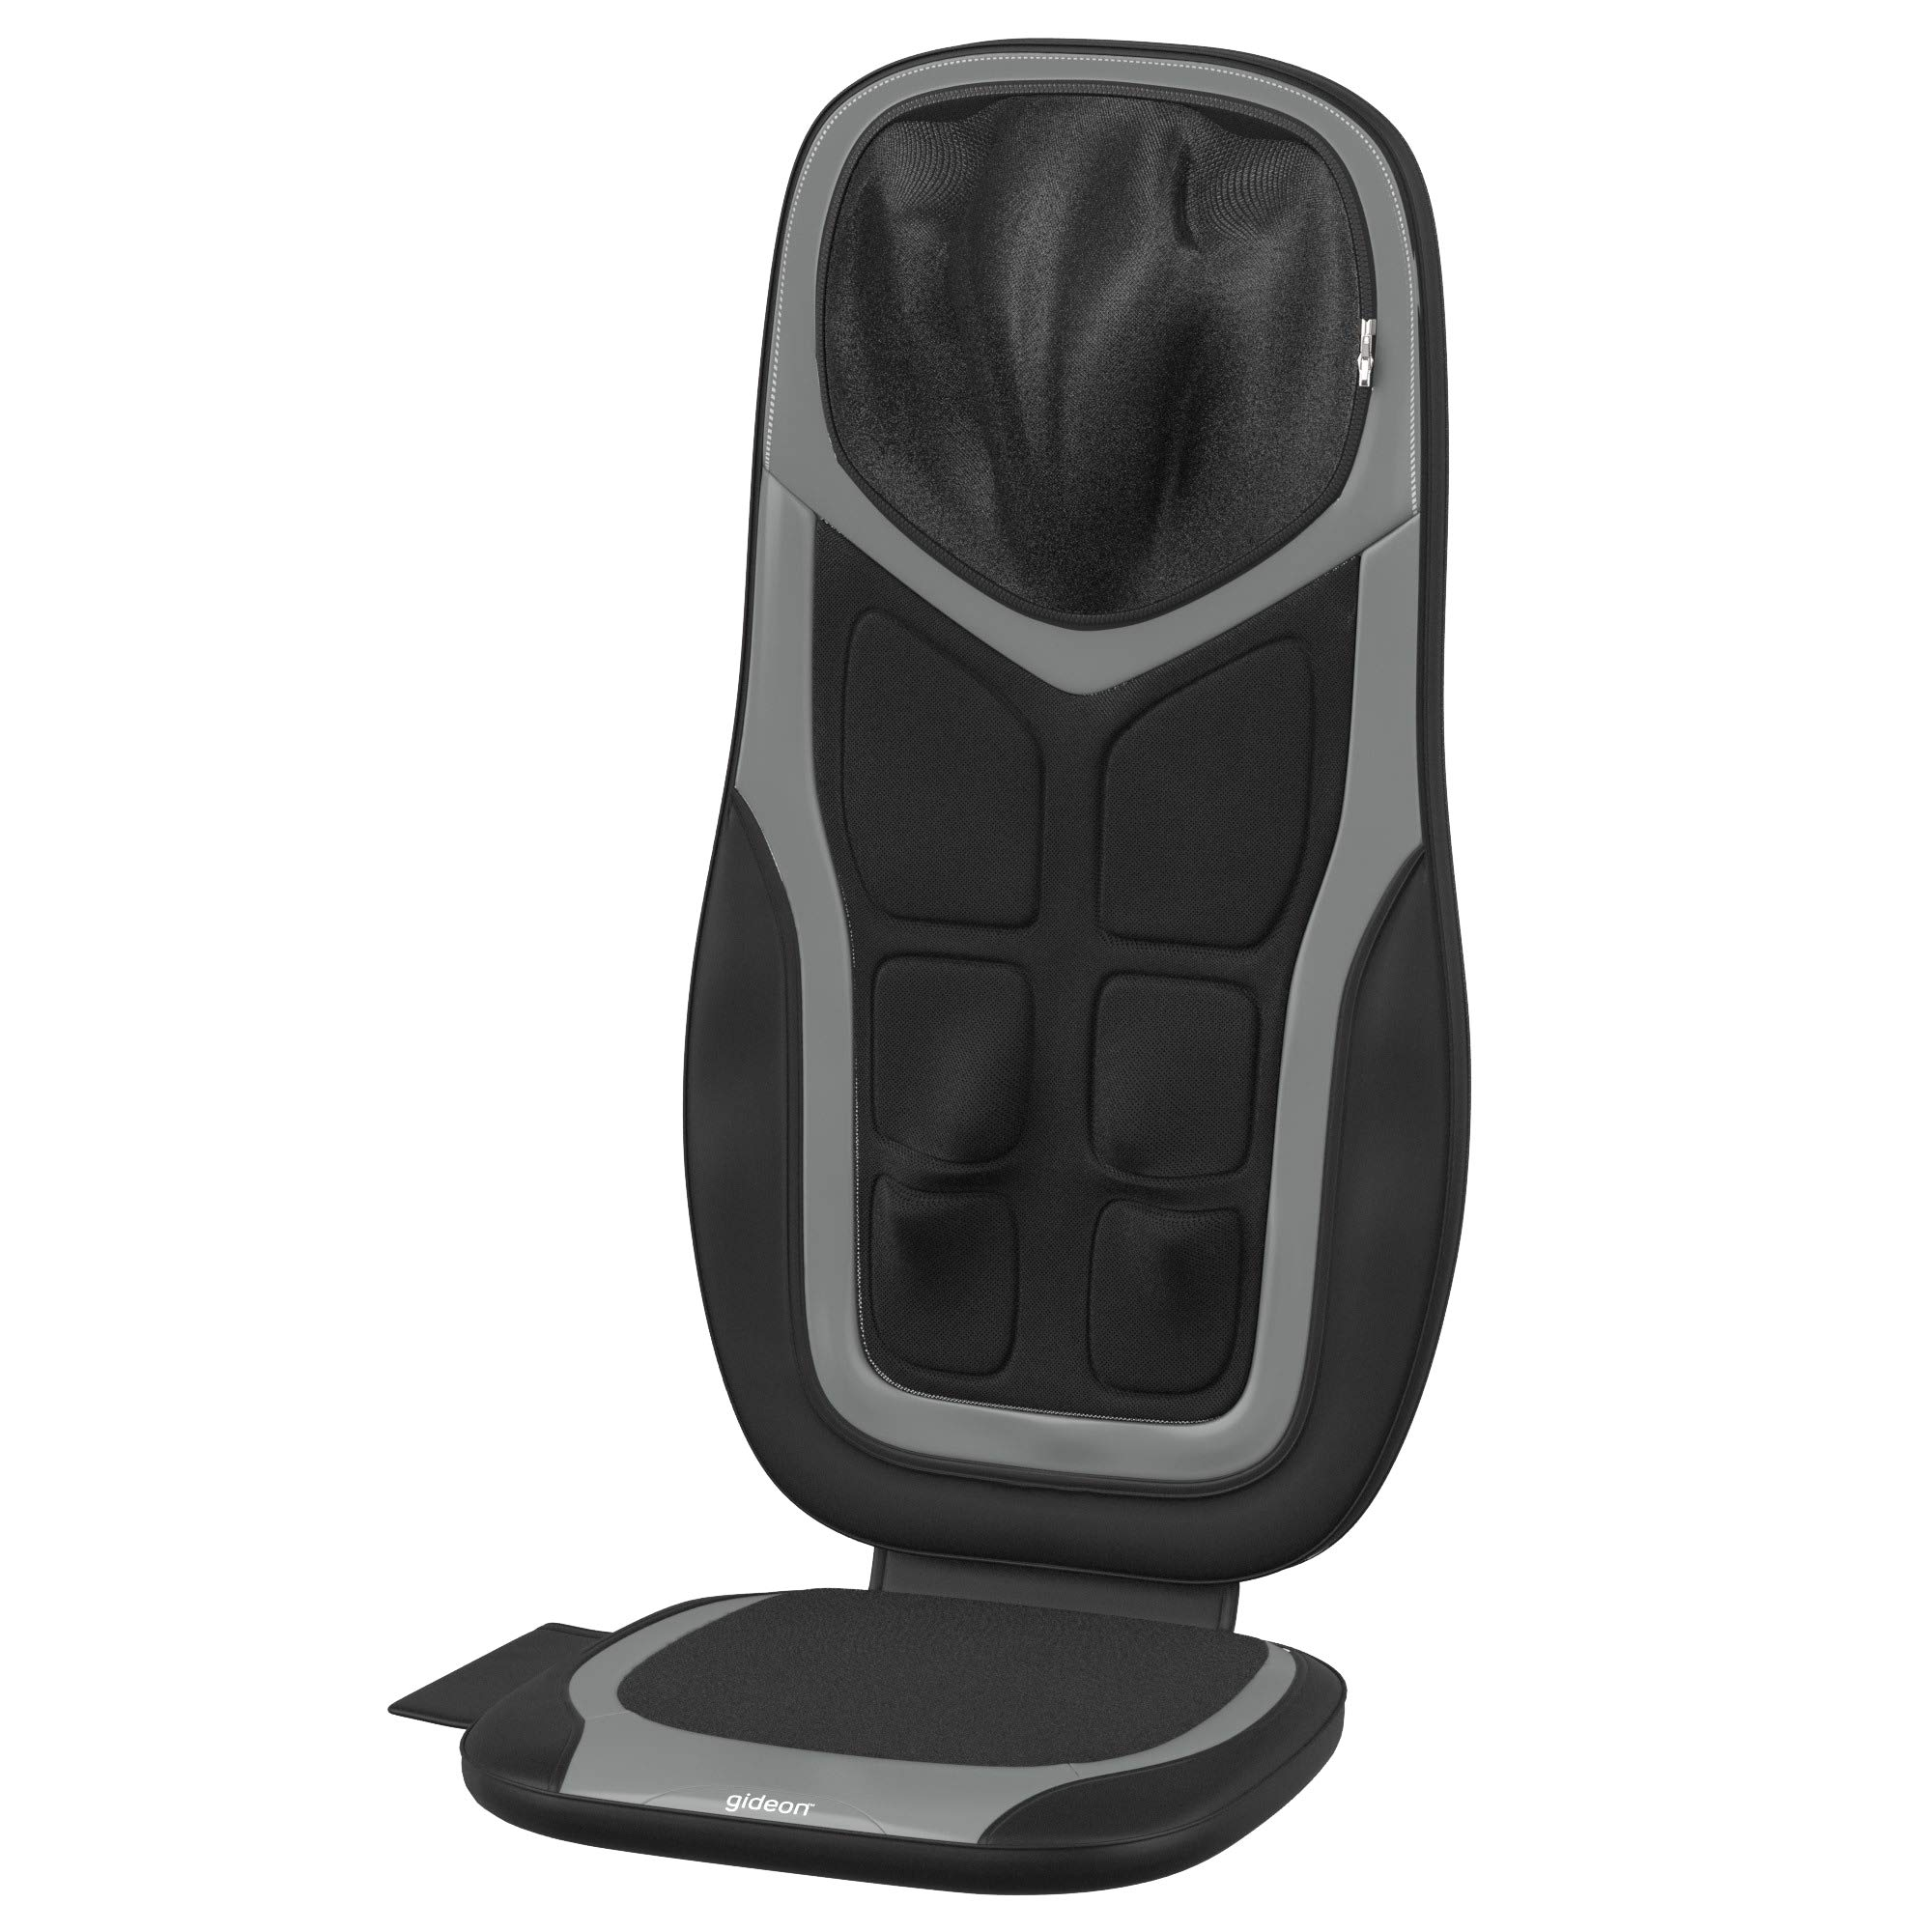 Gideon Shiatsu Neck and Back Massage Seat Cushion with Six Programs and Heat Deep Kneading Back Massager for Car, Home or Office Chair Use